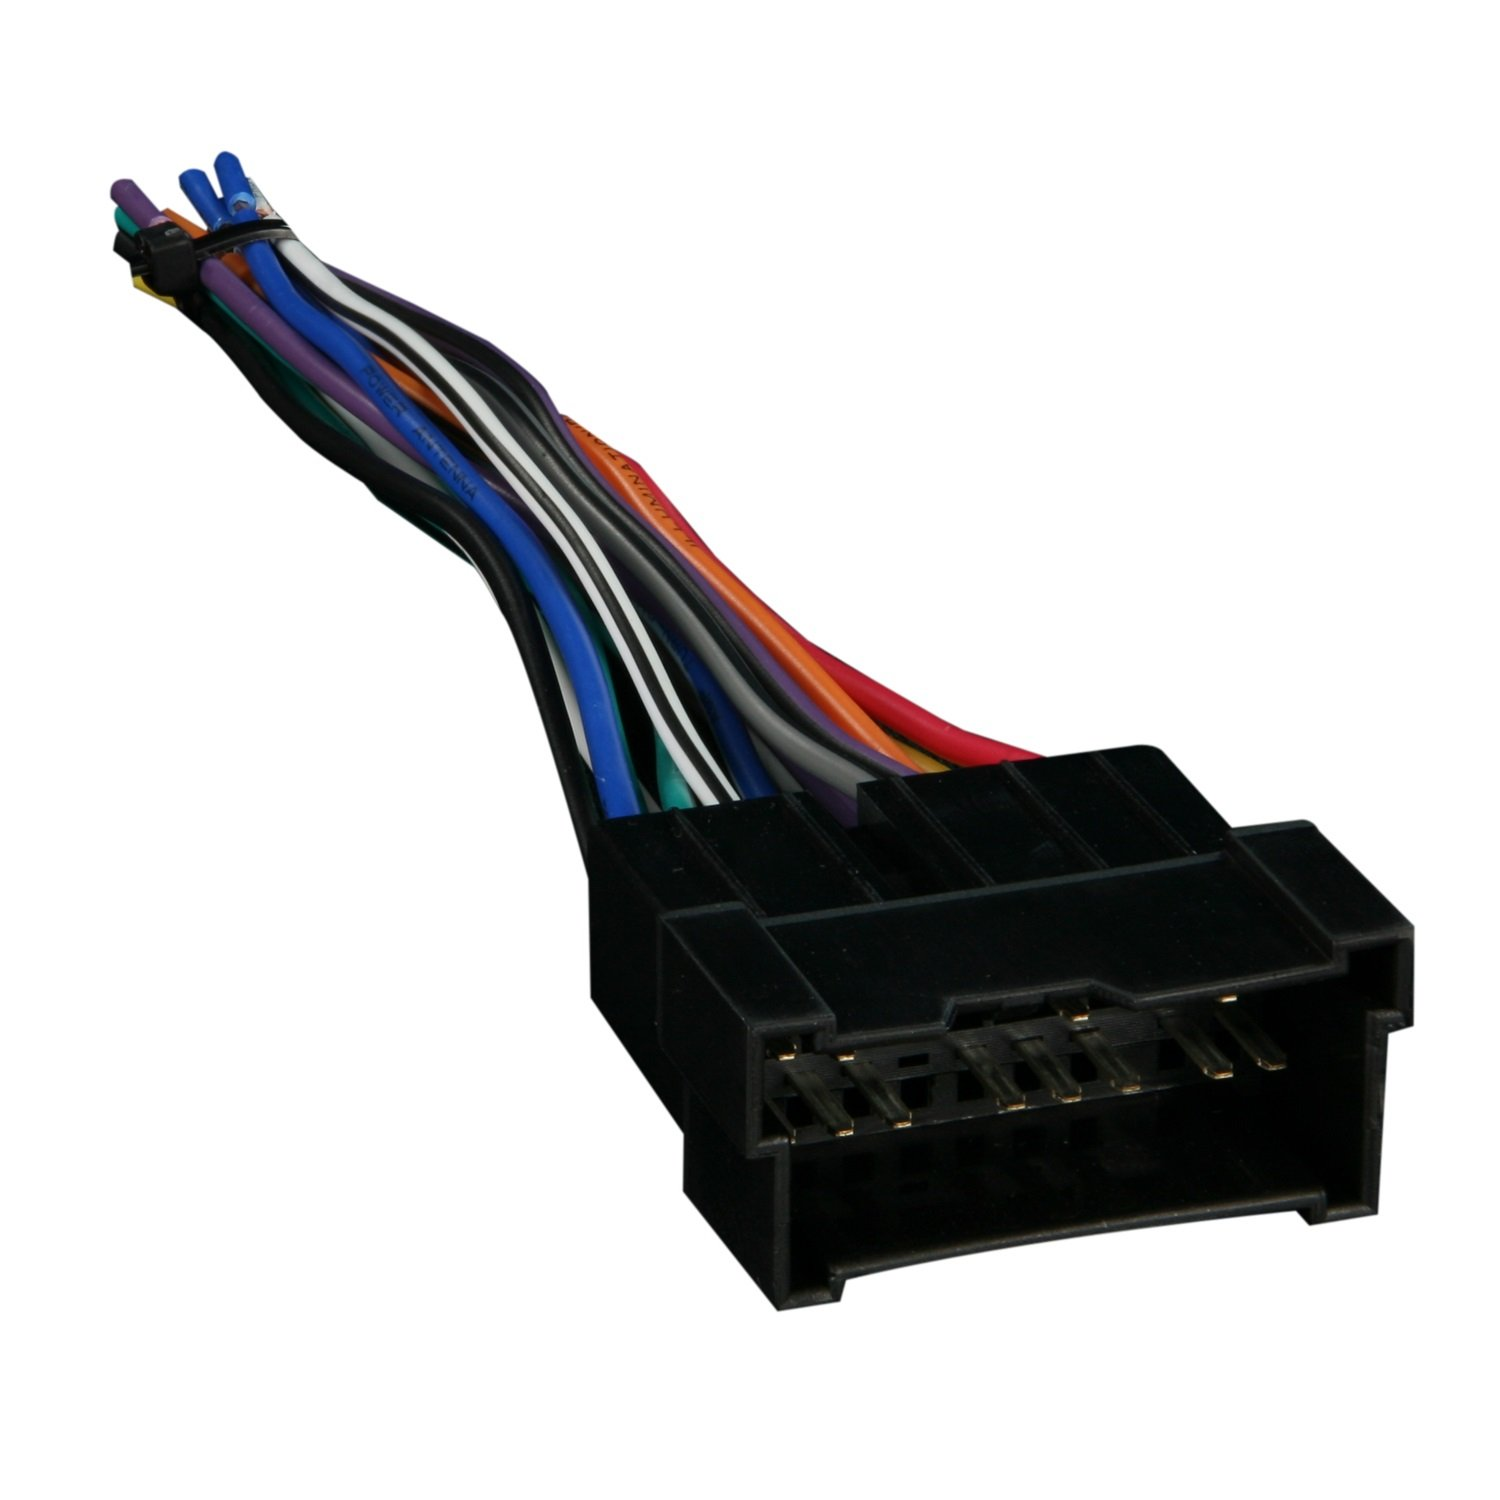 617yeBmOquL._SL1500_ amazon com metra 70 7301 radio wiring harness for hyundai kia 99 Wire Harness Assembly at edmiracle.co